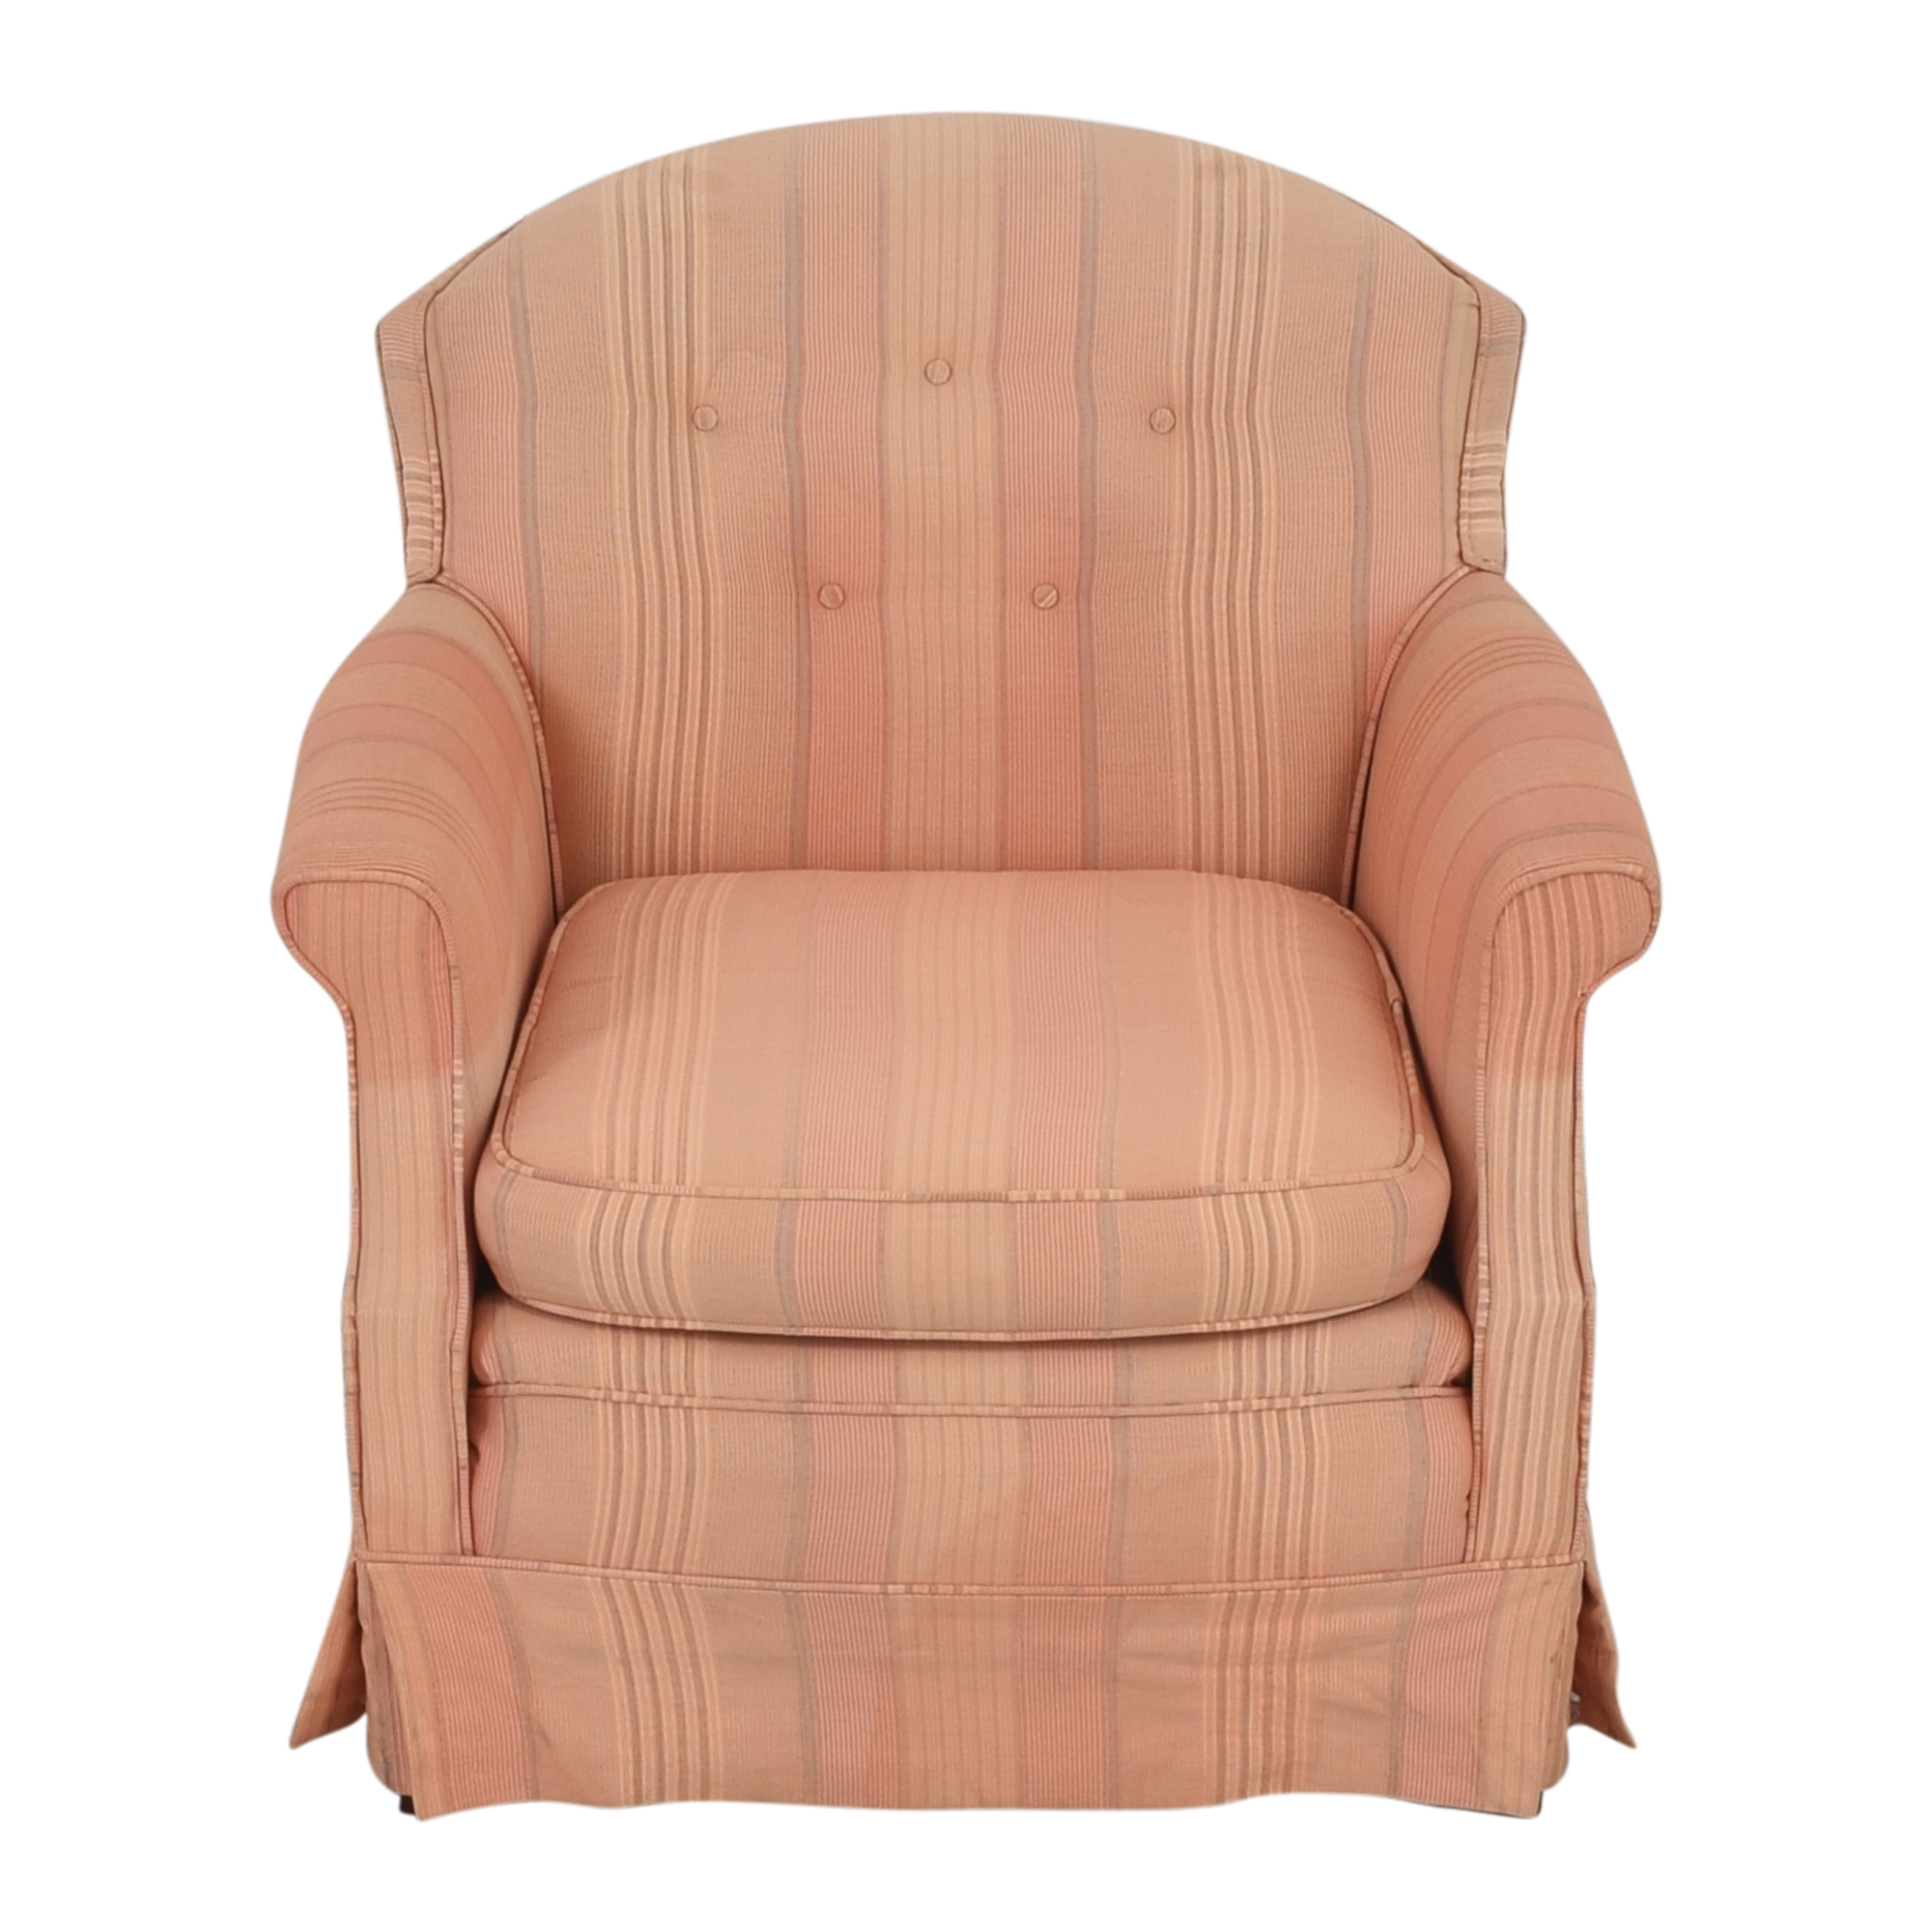 buy  Upholstered Accent Chair online